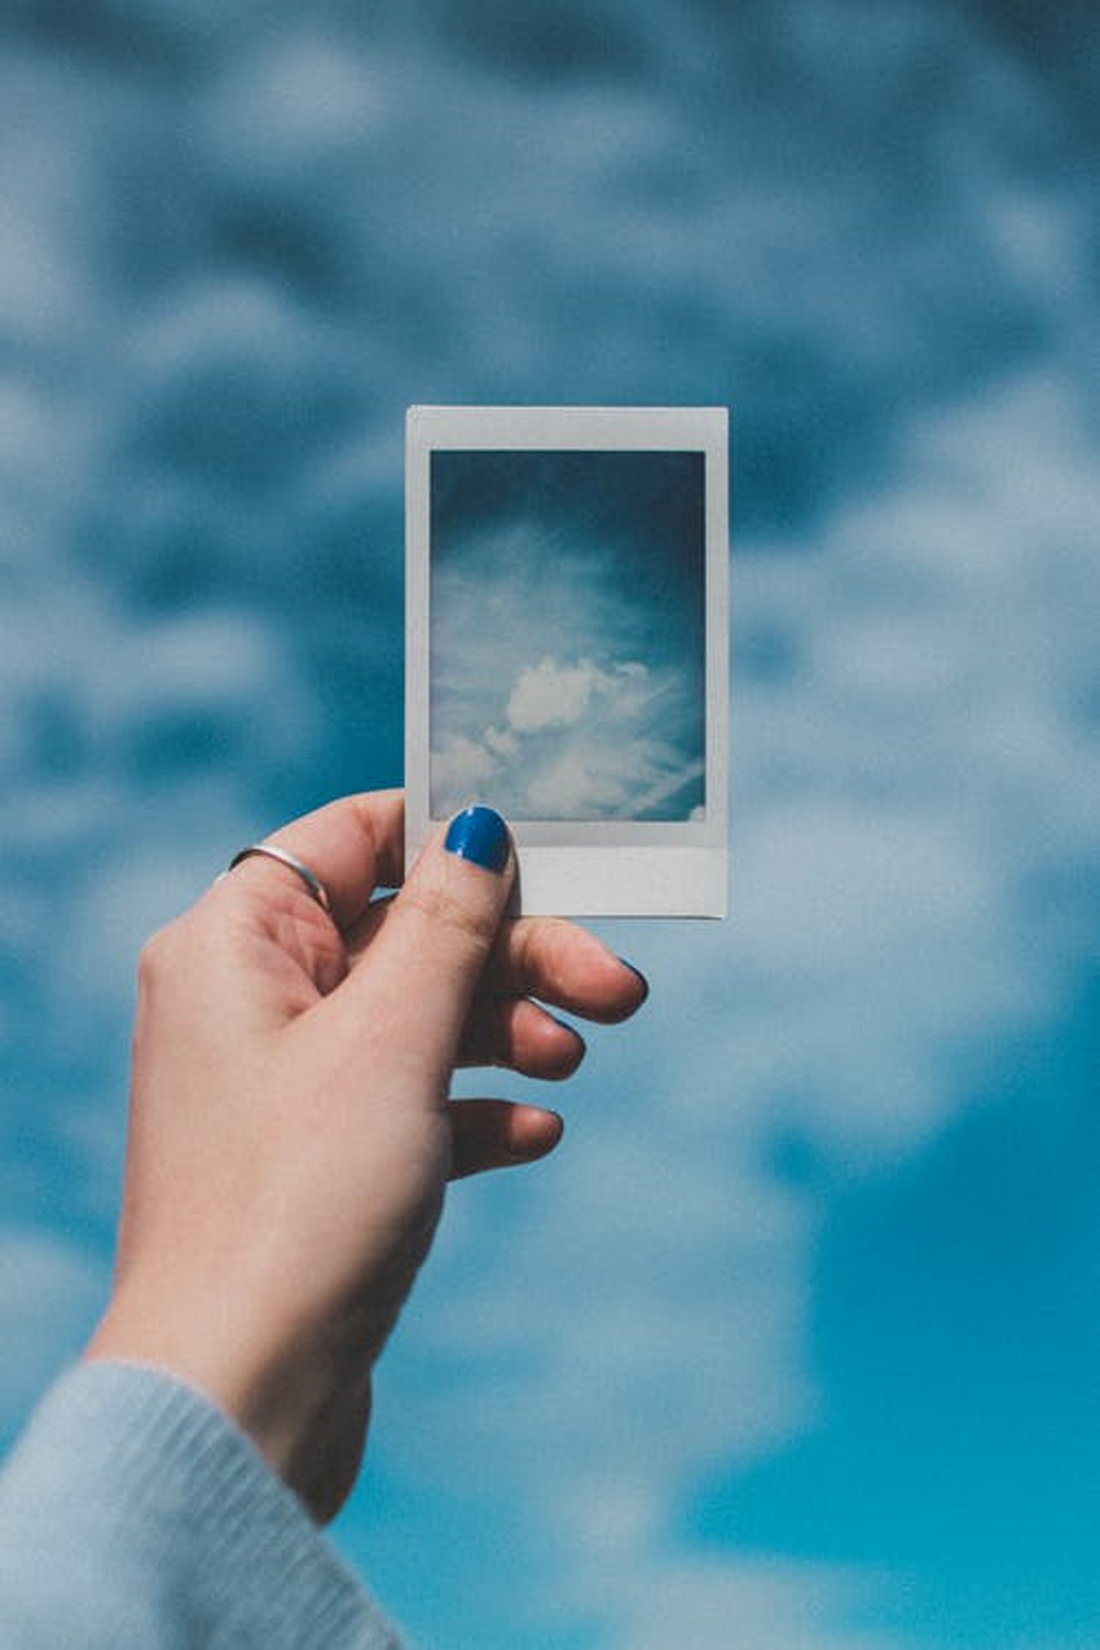 cloud pic in hand